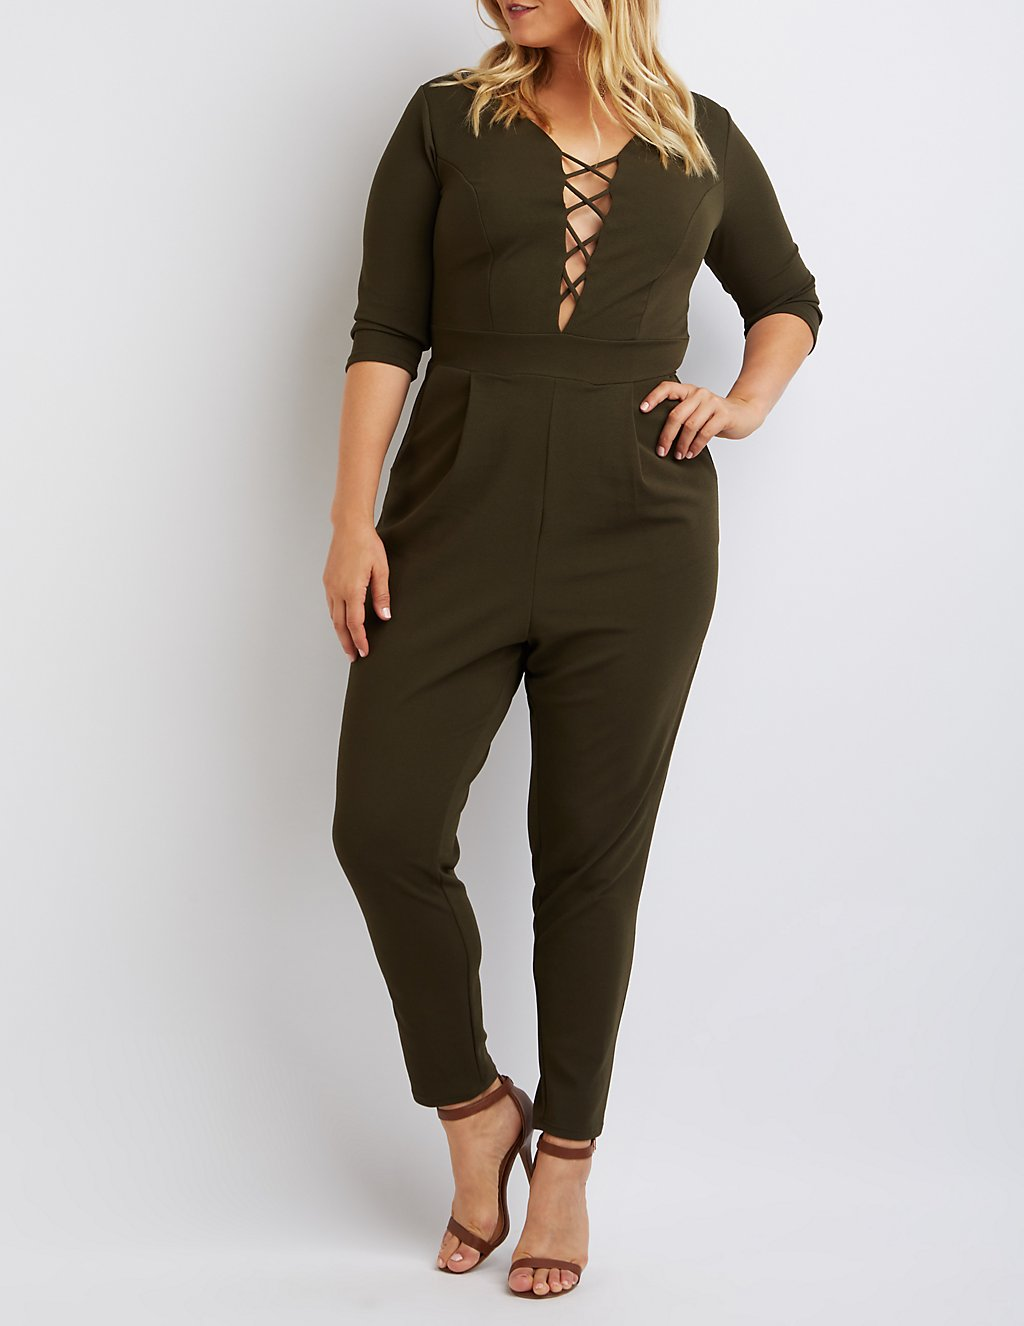 0bfbe9eb2c7 Related Posts You May Also Enjoy. Flirty Summer Plus Size Dresses Under  50 From  Charlotte Russe